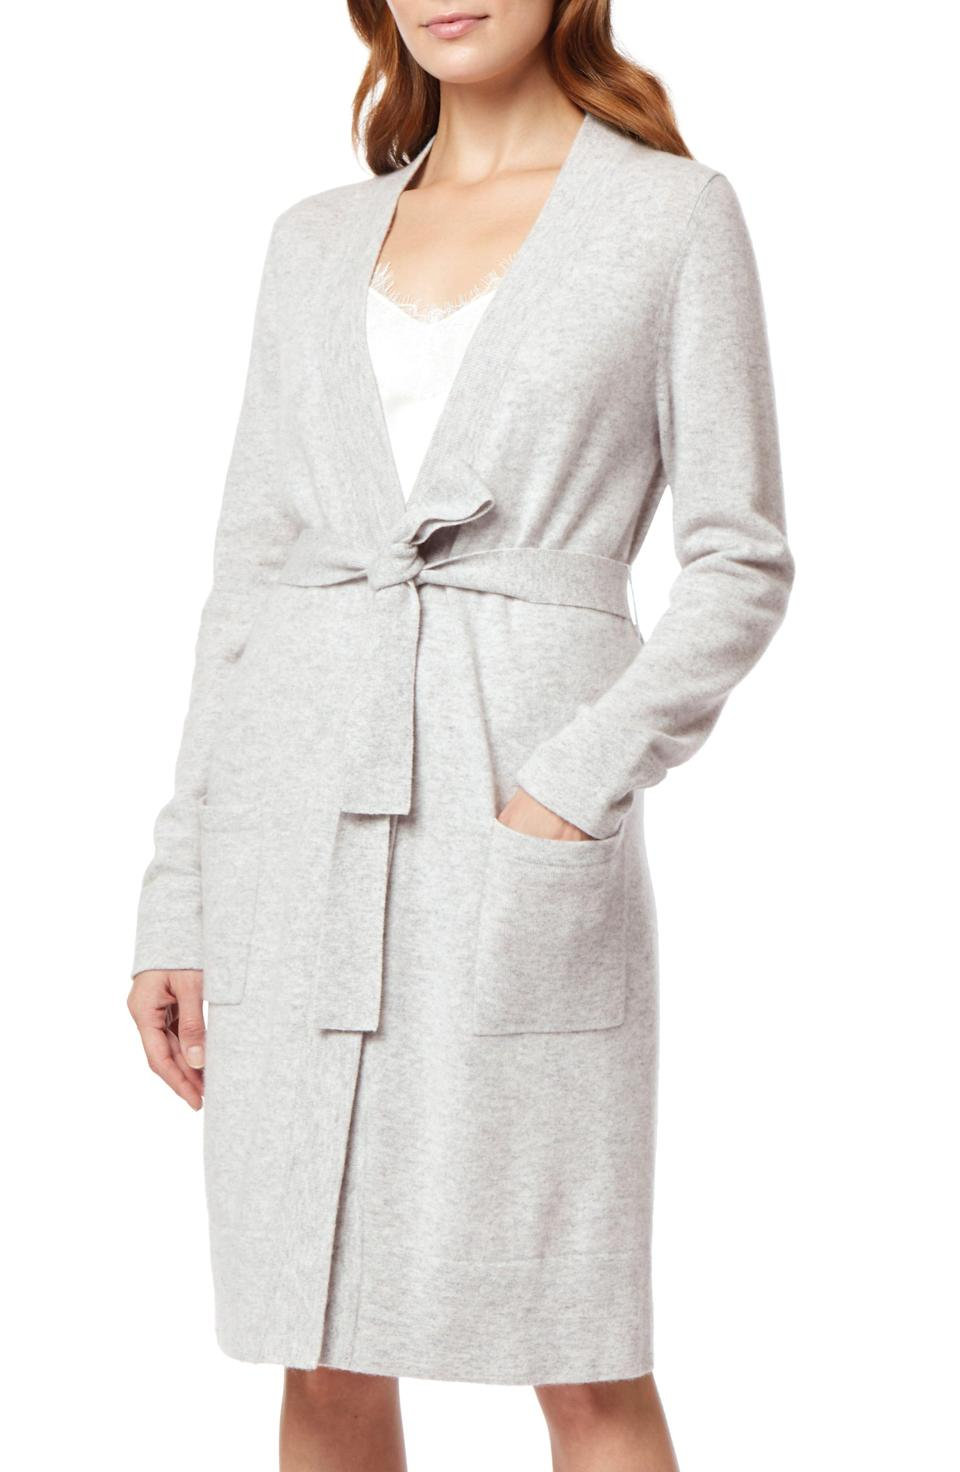 """<p><strong>The White Company</strong></p><p>nordstrom.com</p><p><strong>$325.00</strong></p><p><a href=""""https://go.redirectingat.com?id=74968X1596630&url=https%3A%2F%2Fwww.nordstrom.com%2Fs%2Fthe-white-company-short-cashmere-robe%2F5374037&sref=https%3A%2F%2Fwww.veranda.com%2Fluxury-lifestyle%2Fluxury-fashion-jewelry%2Fg34574412%2Fbest-loungewear%2F"""" rel=""""nofollow noopener"""" target=""""_blank"""" data-ylk=""""slk:Shop Now"""" class=""""link rapid-noclick-resp"""">Shop Now</a></p><p>Sure, it's a robe, but couldn't it also pass as a luxe duster cardigan? We are loving this versatile cashmere robe that will keep you warm and cozy while keeping your co-workers from pajama</p>"""